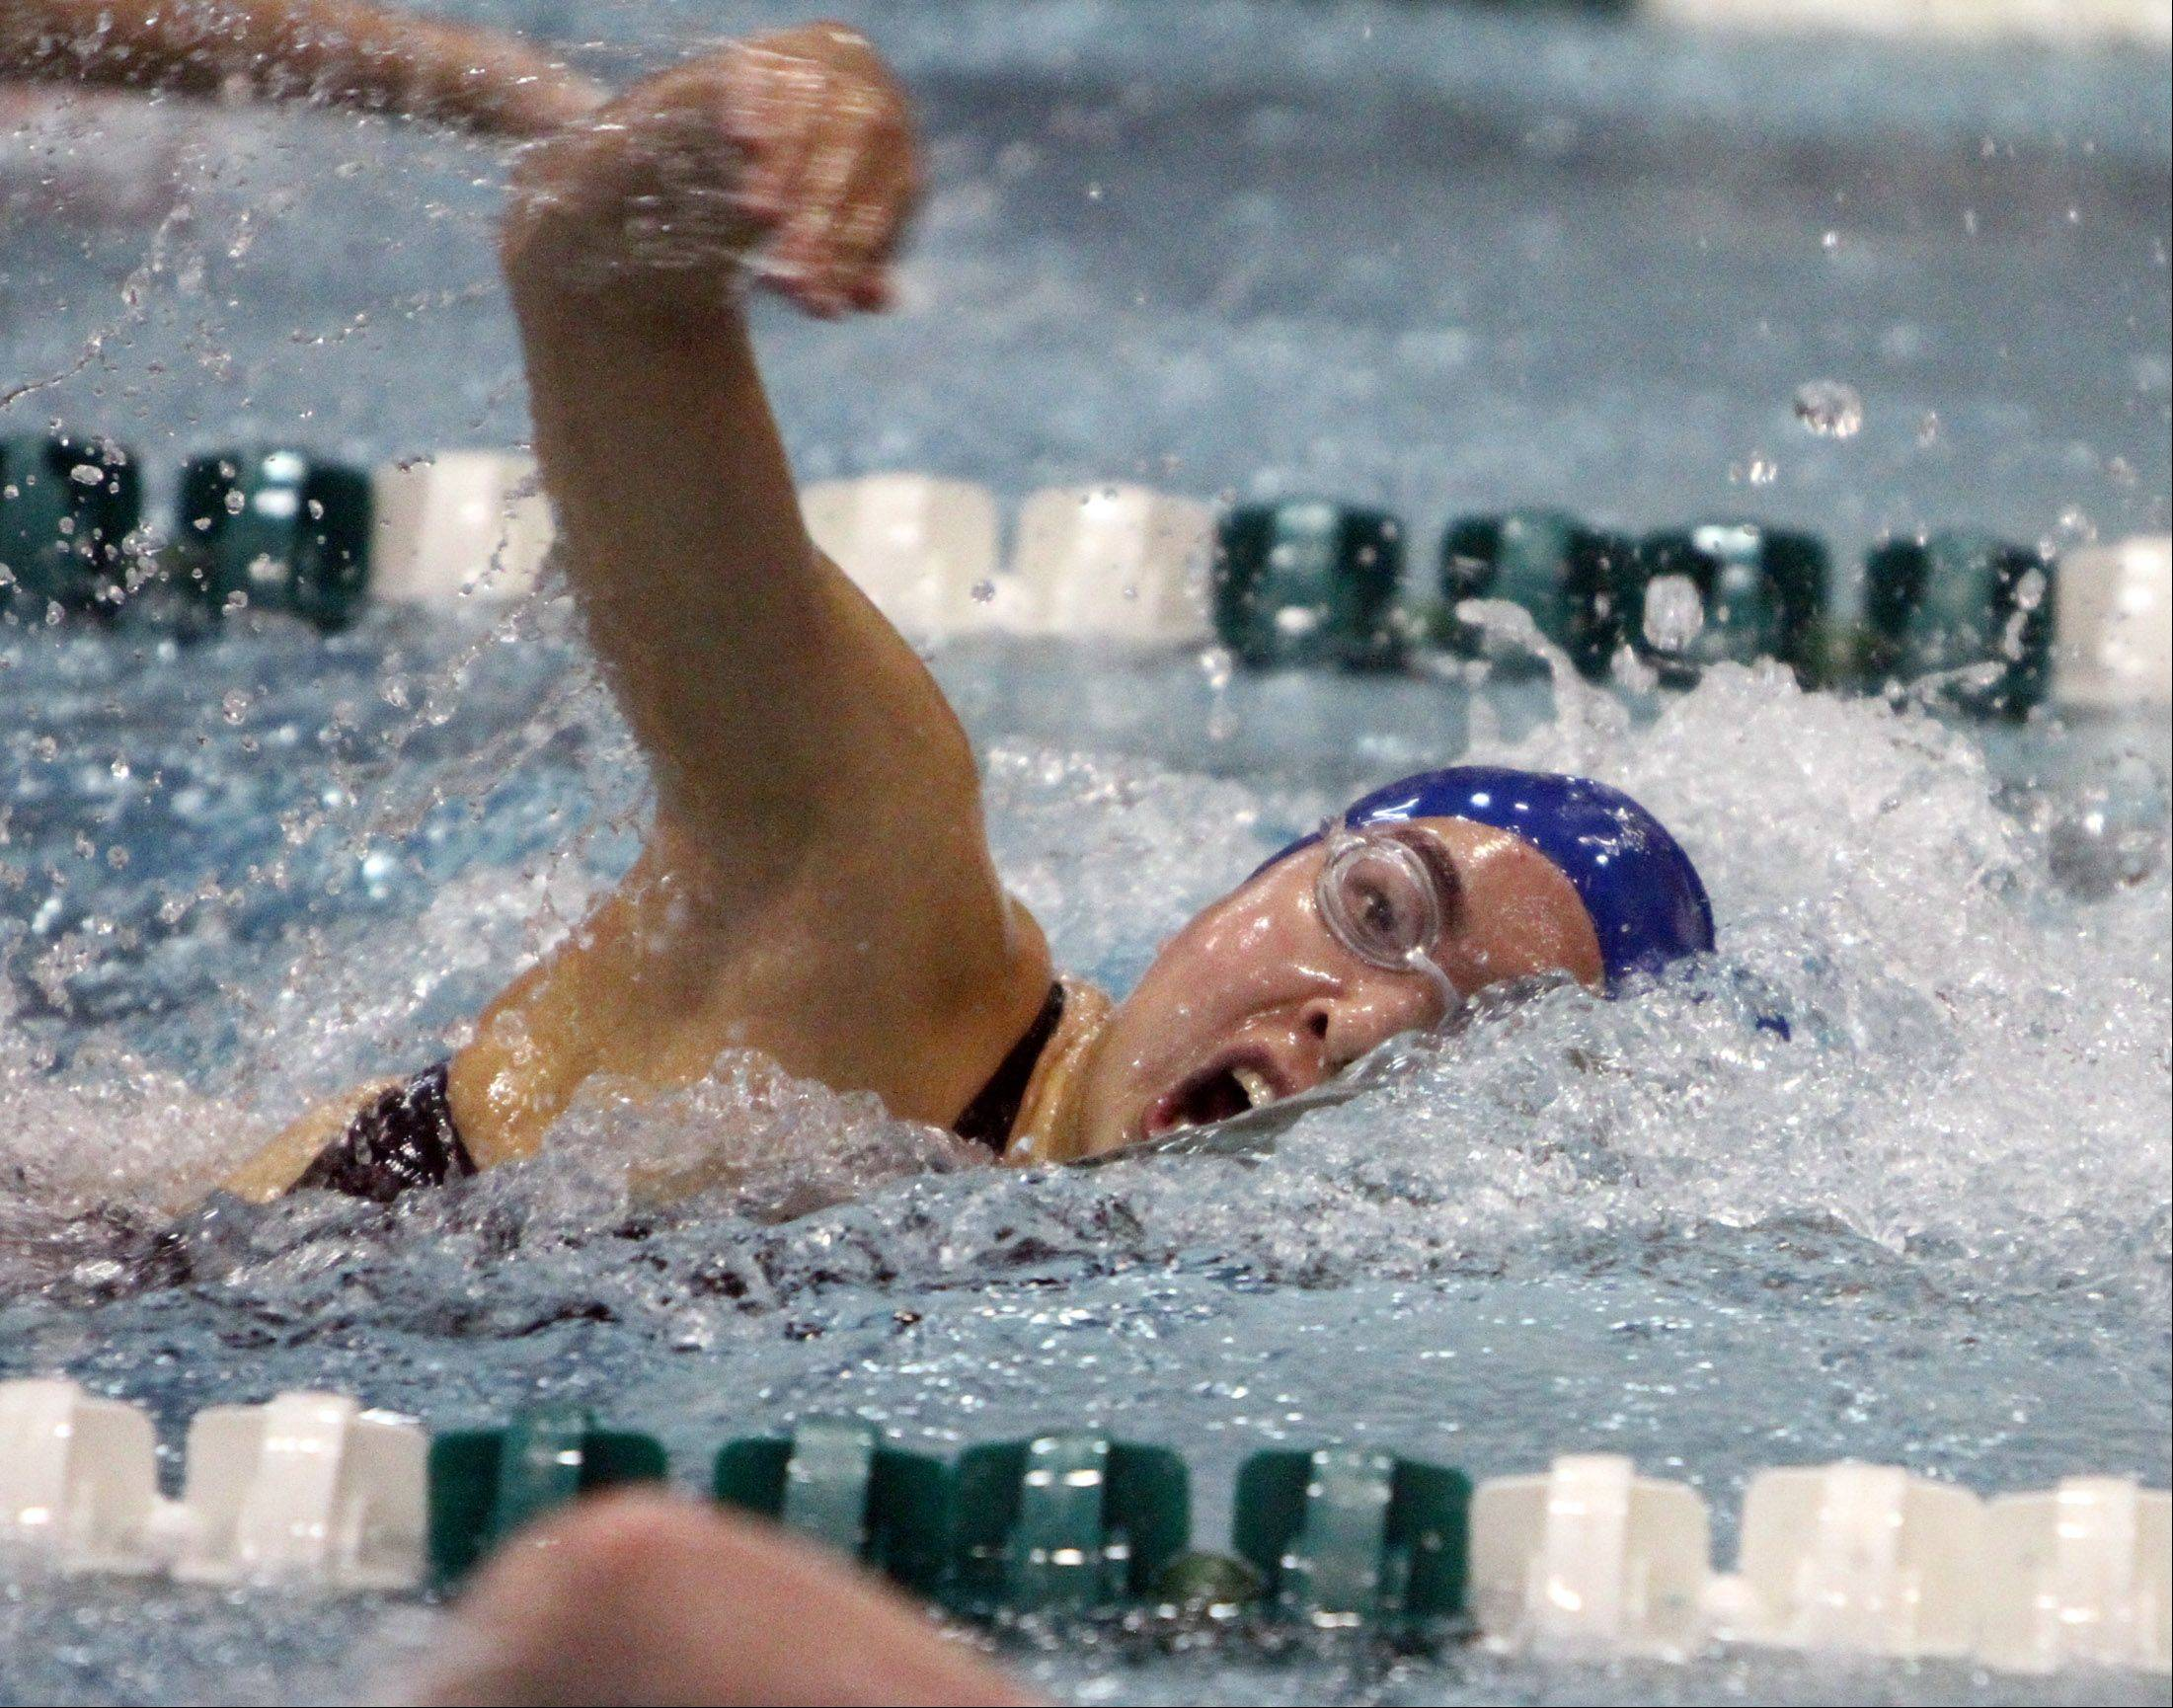 Glenbard West (coop) competes in the 200-yard freestyle at IHSA state final preliminaries in Winnetka on Friday, November 18th.